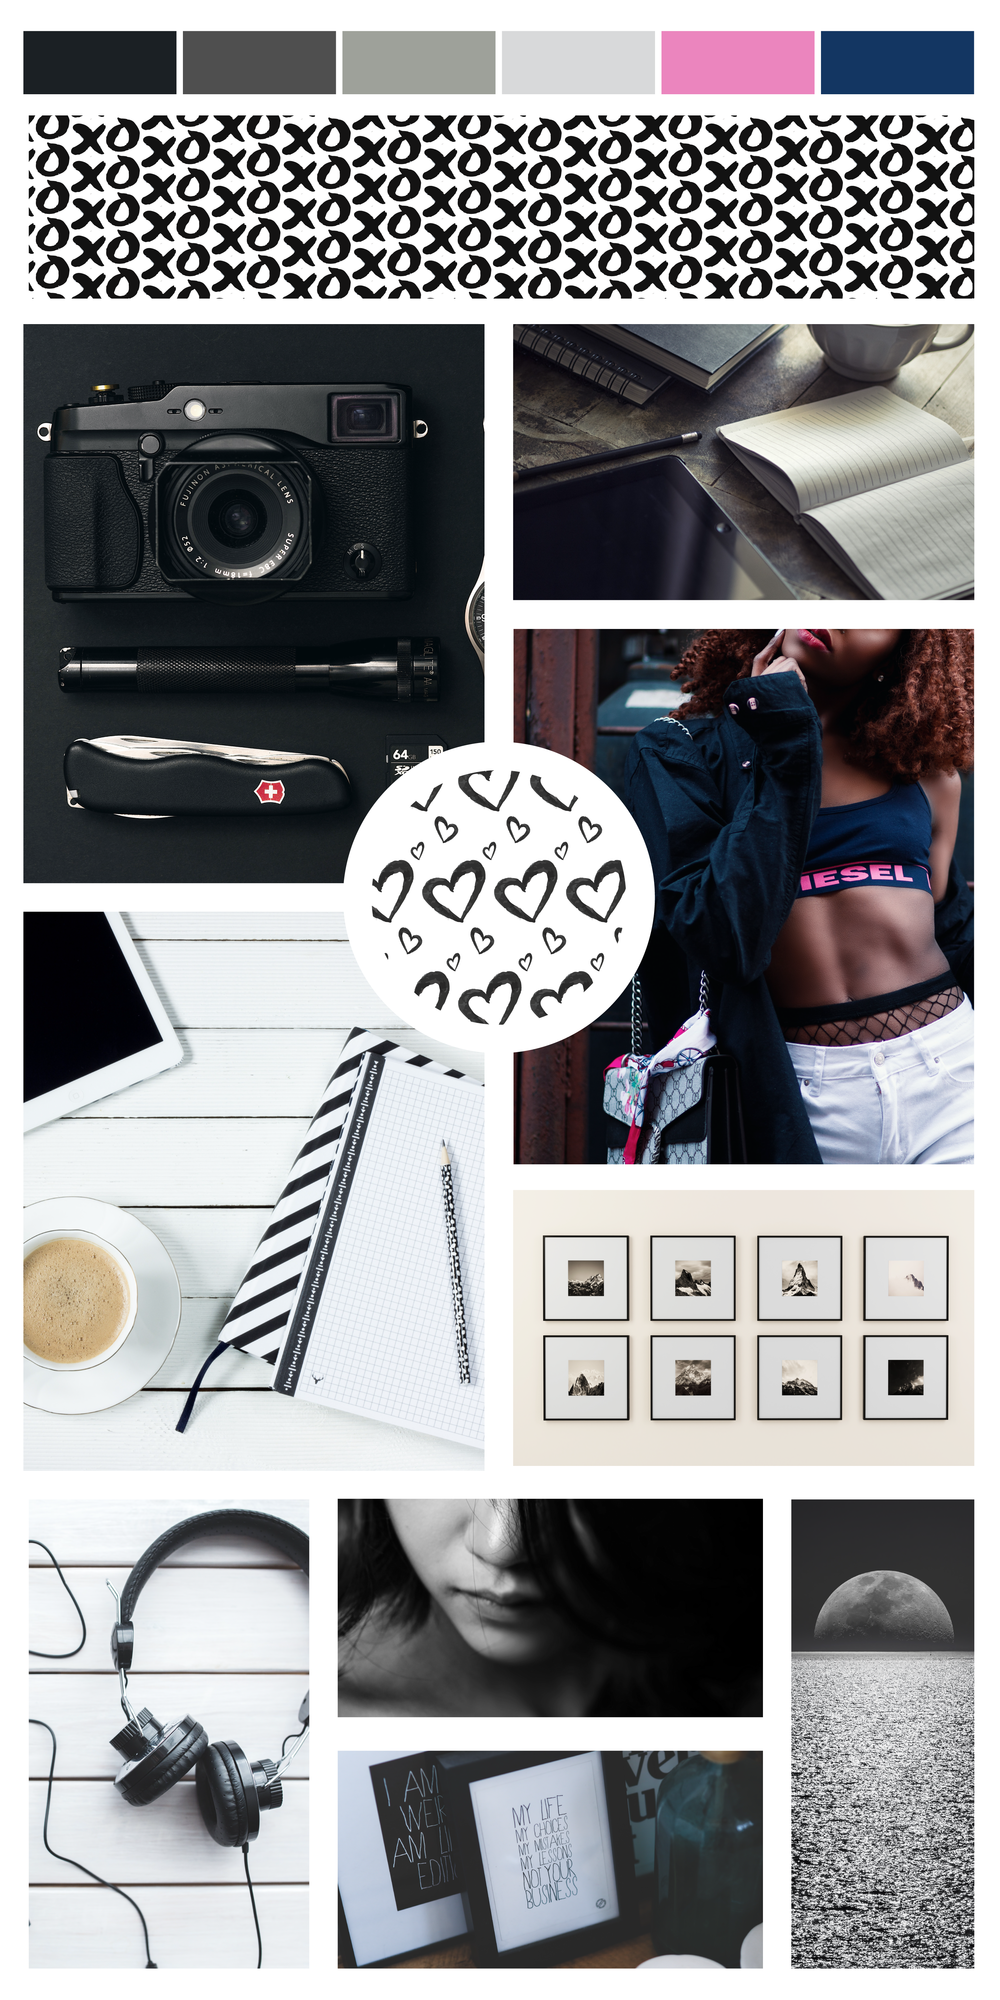 Mood board inspiration for my business. Branding inspiration for my business. Brand build. Building a brand. Hire graphic designer for branding.